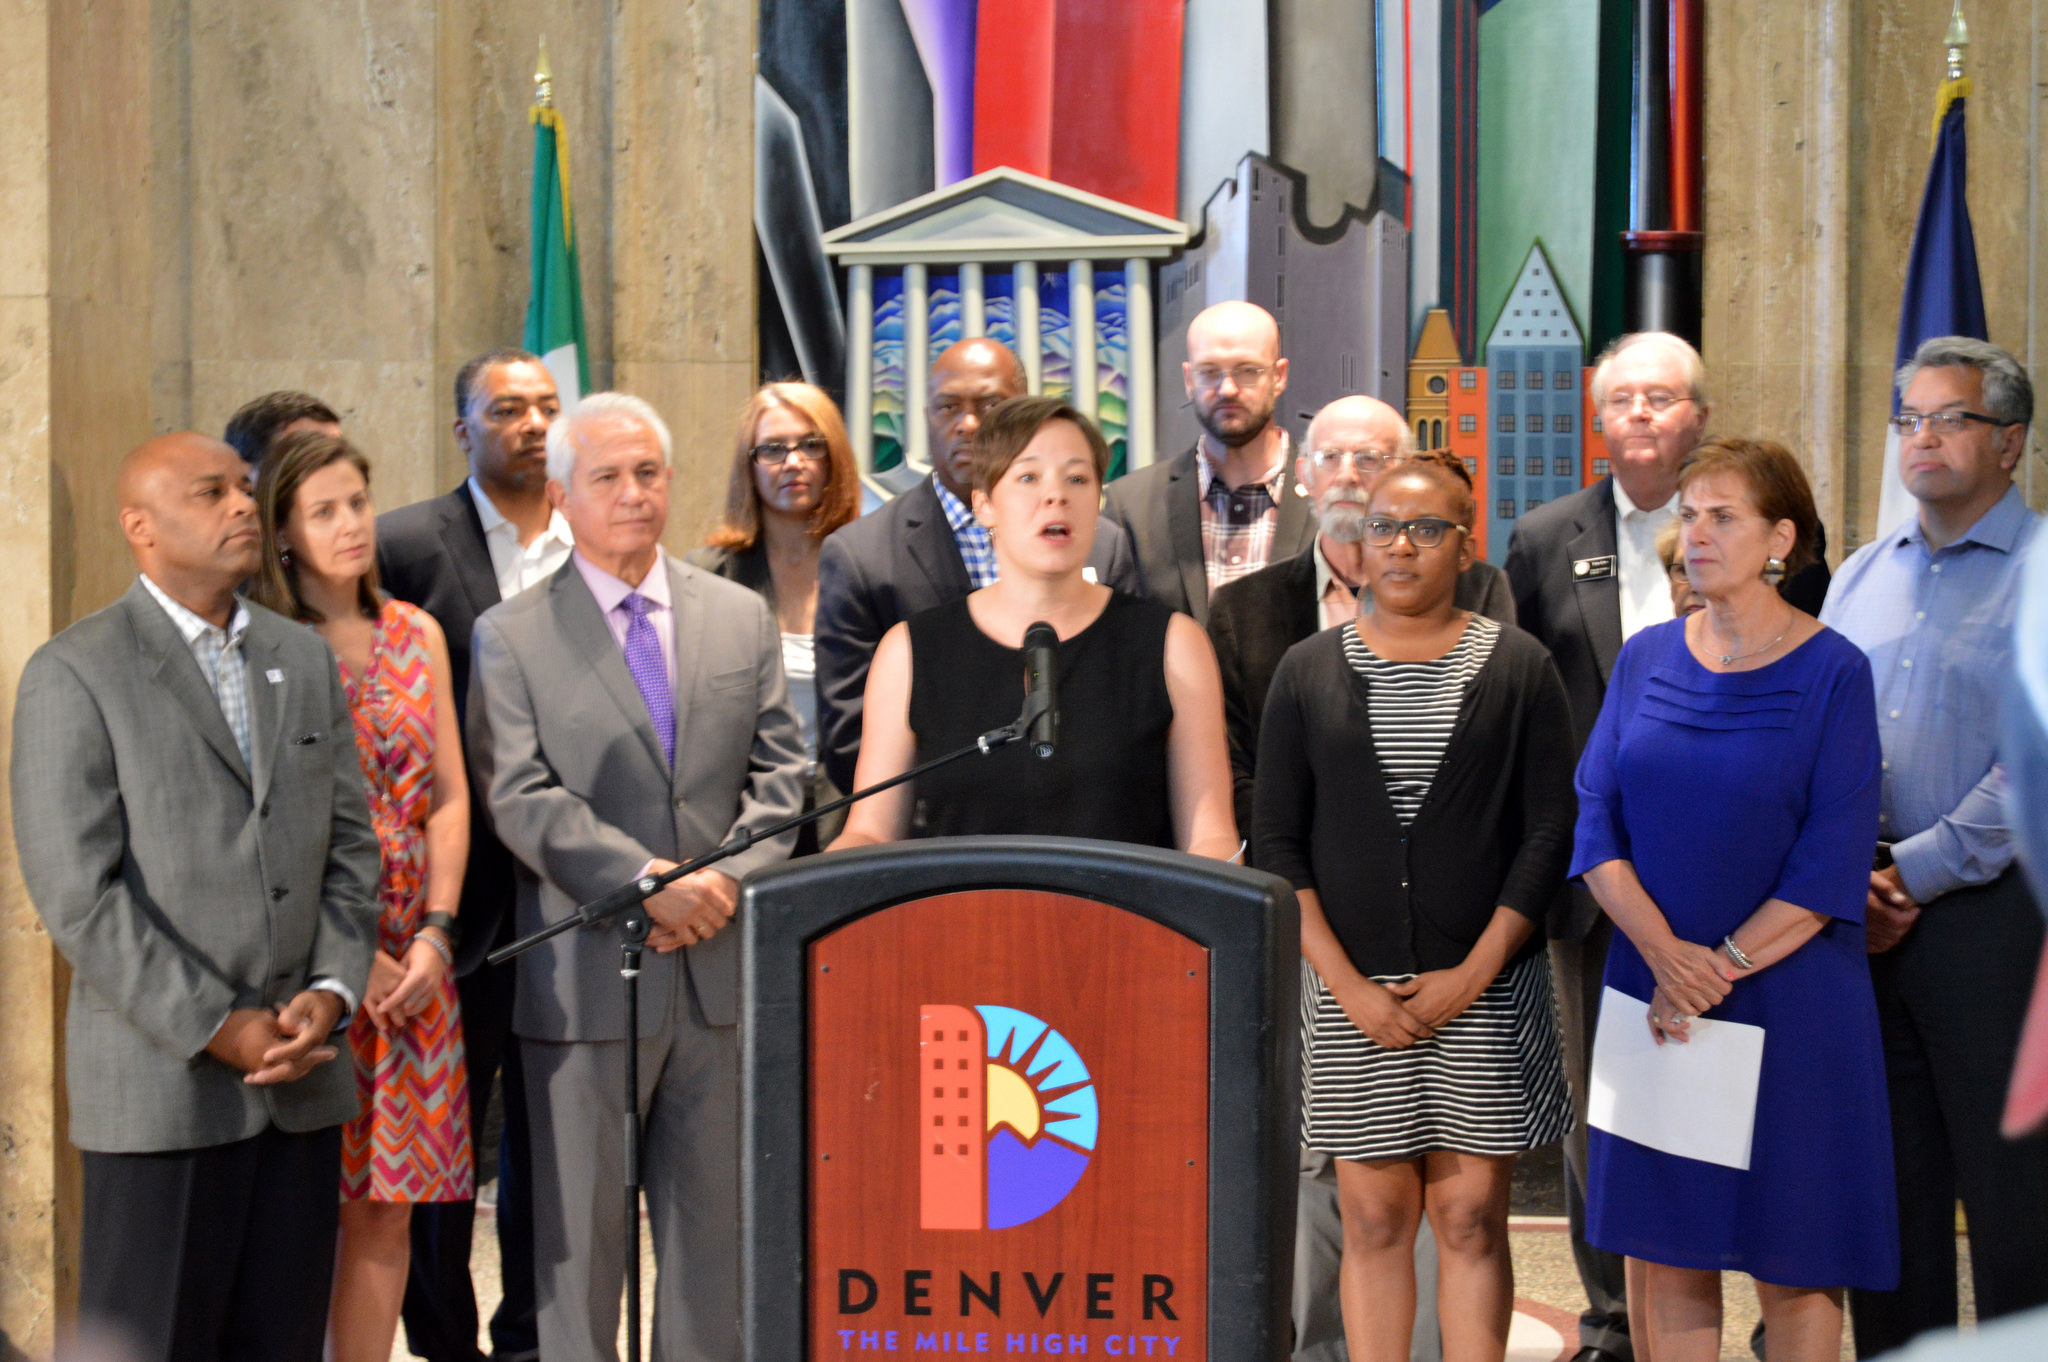 Councilwoman Robin Kniech, fellow Council members and core supporters announcing Denver's $150 million housing trust fund (photo courtesy of the Office of At-Large Councilwoman Robin Kniech)